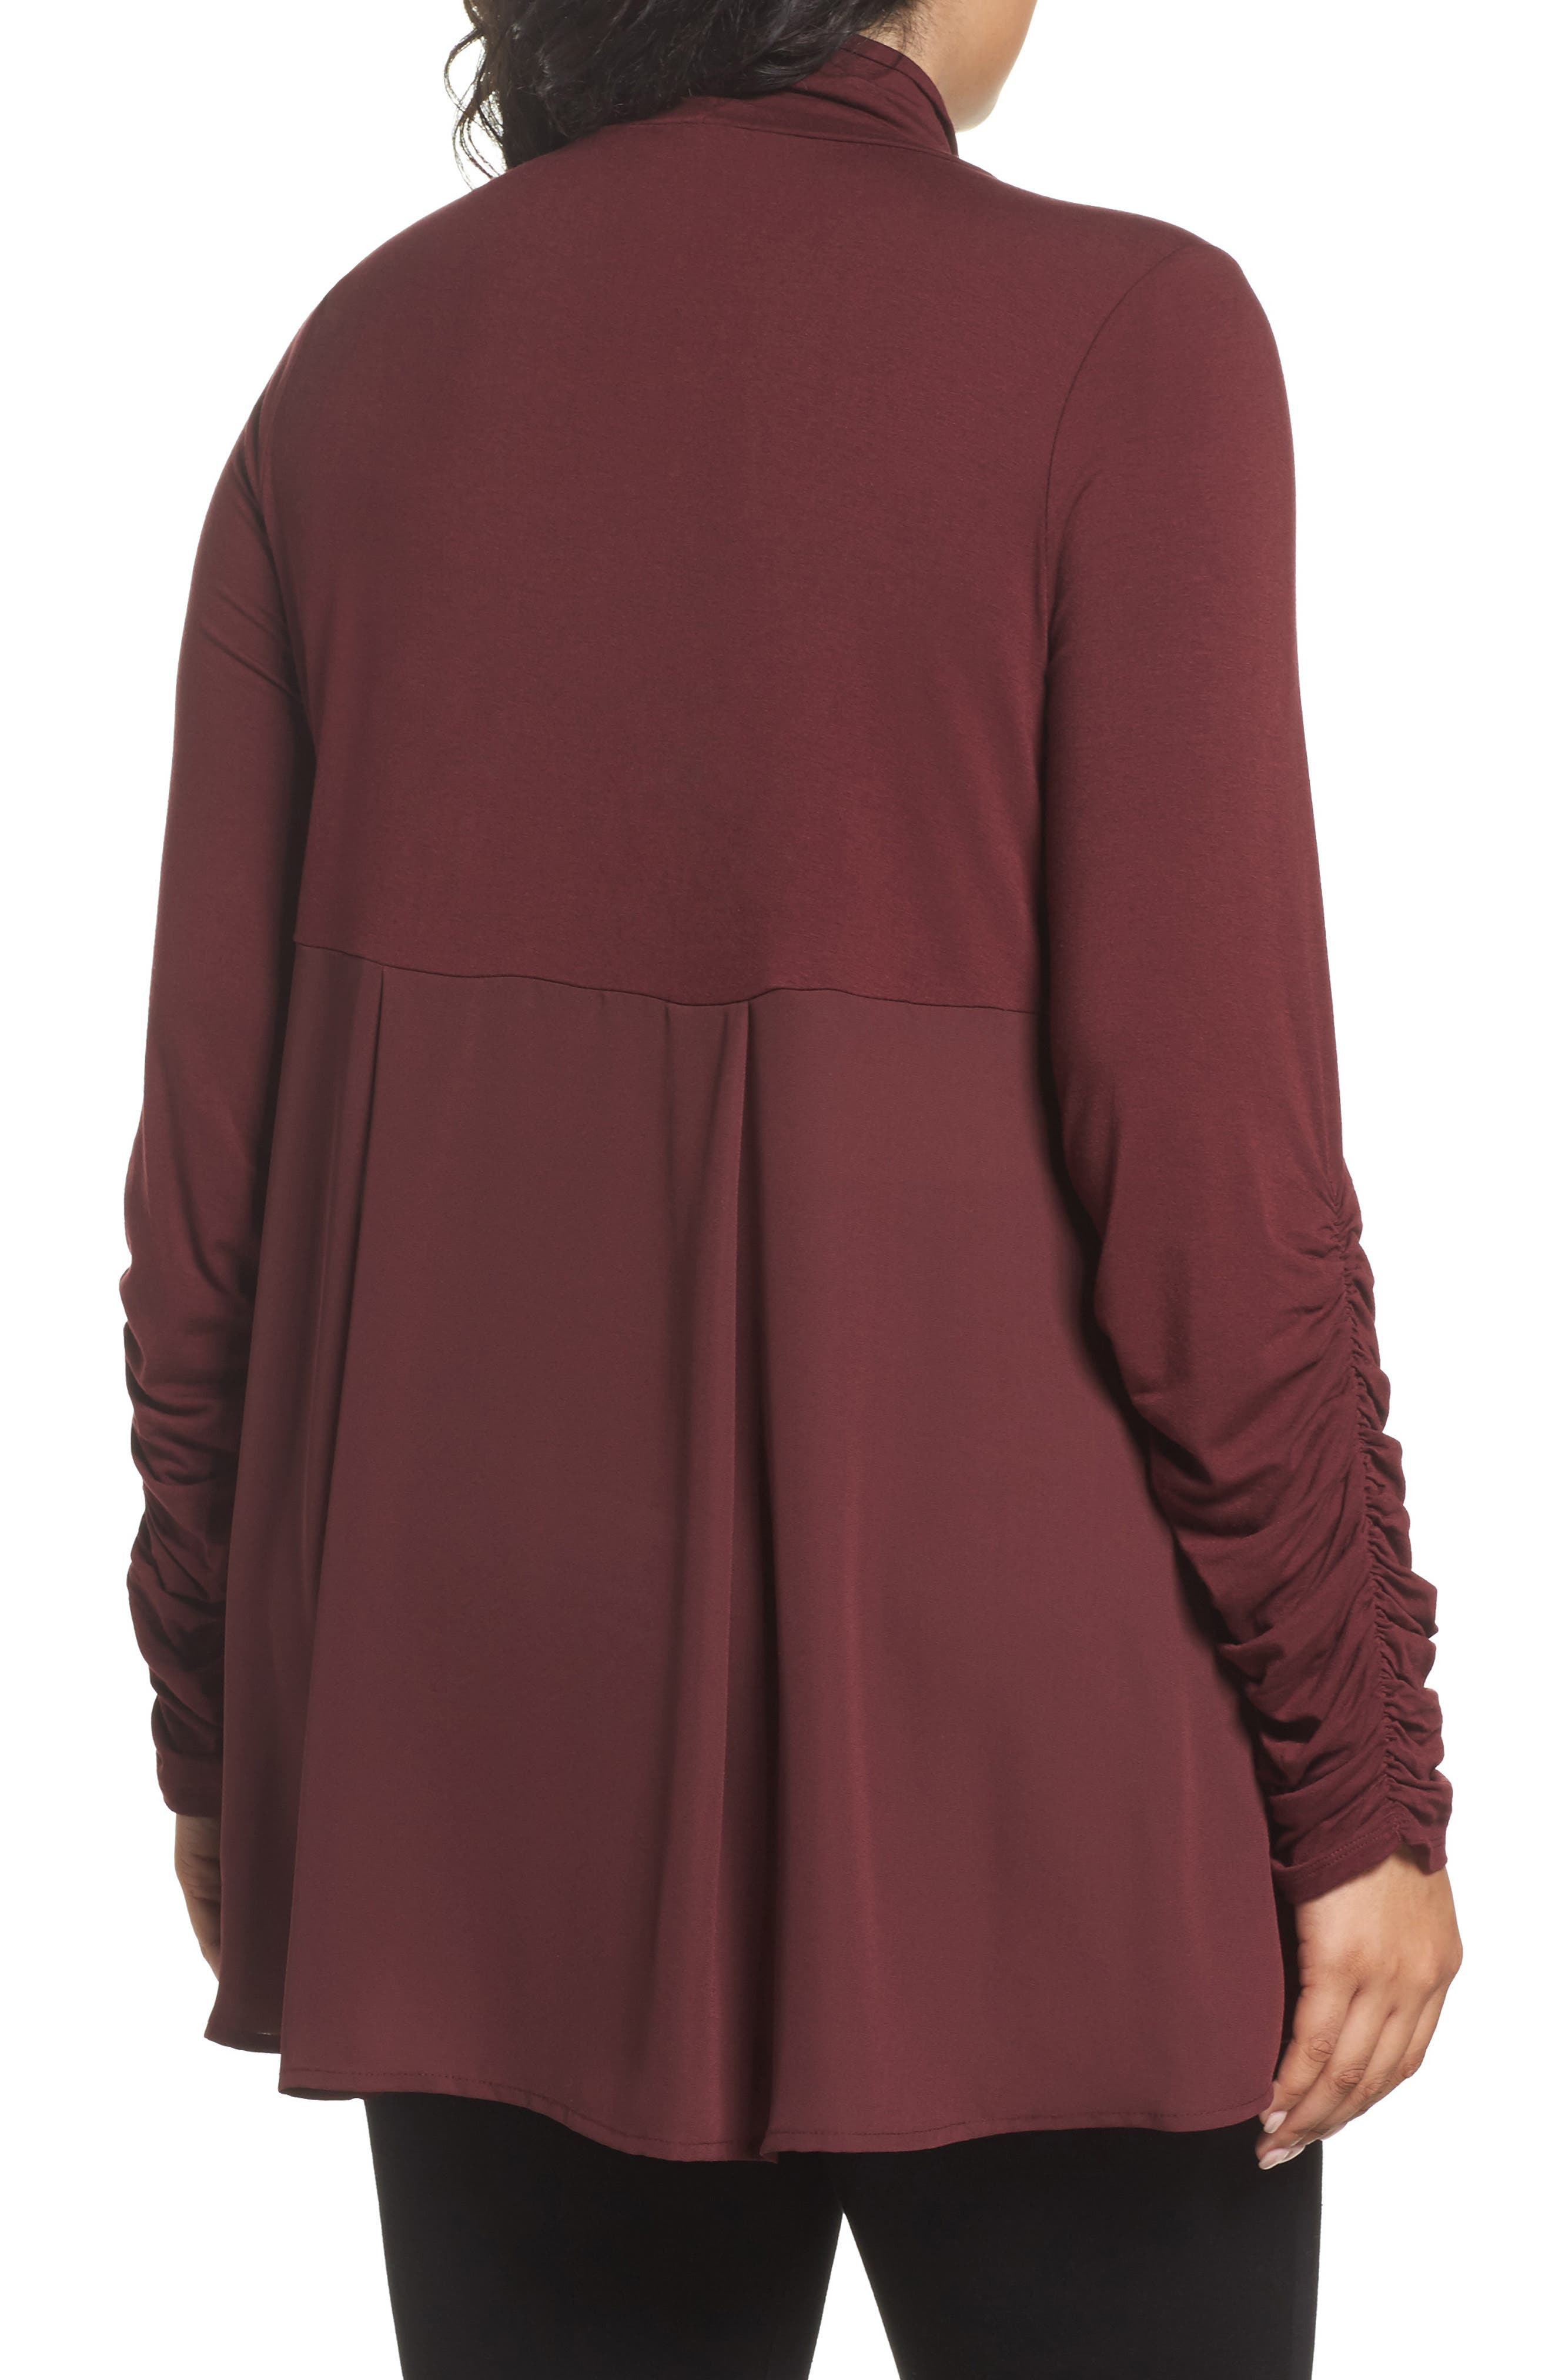 Ruched Sleeve Turtleneck Top,                             Alternate thumbnail 2, color,                             018